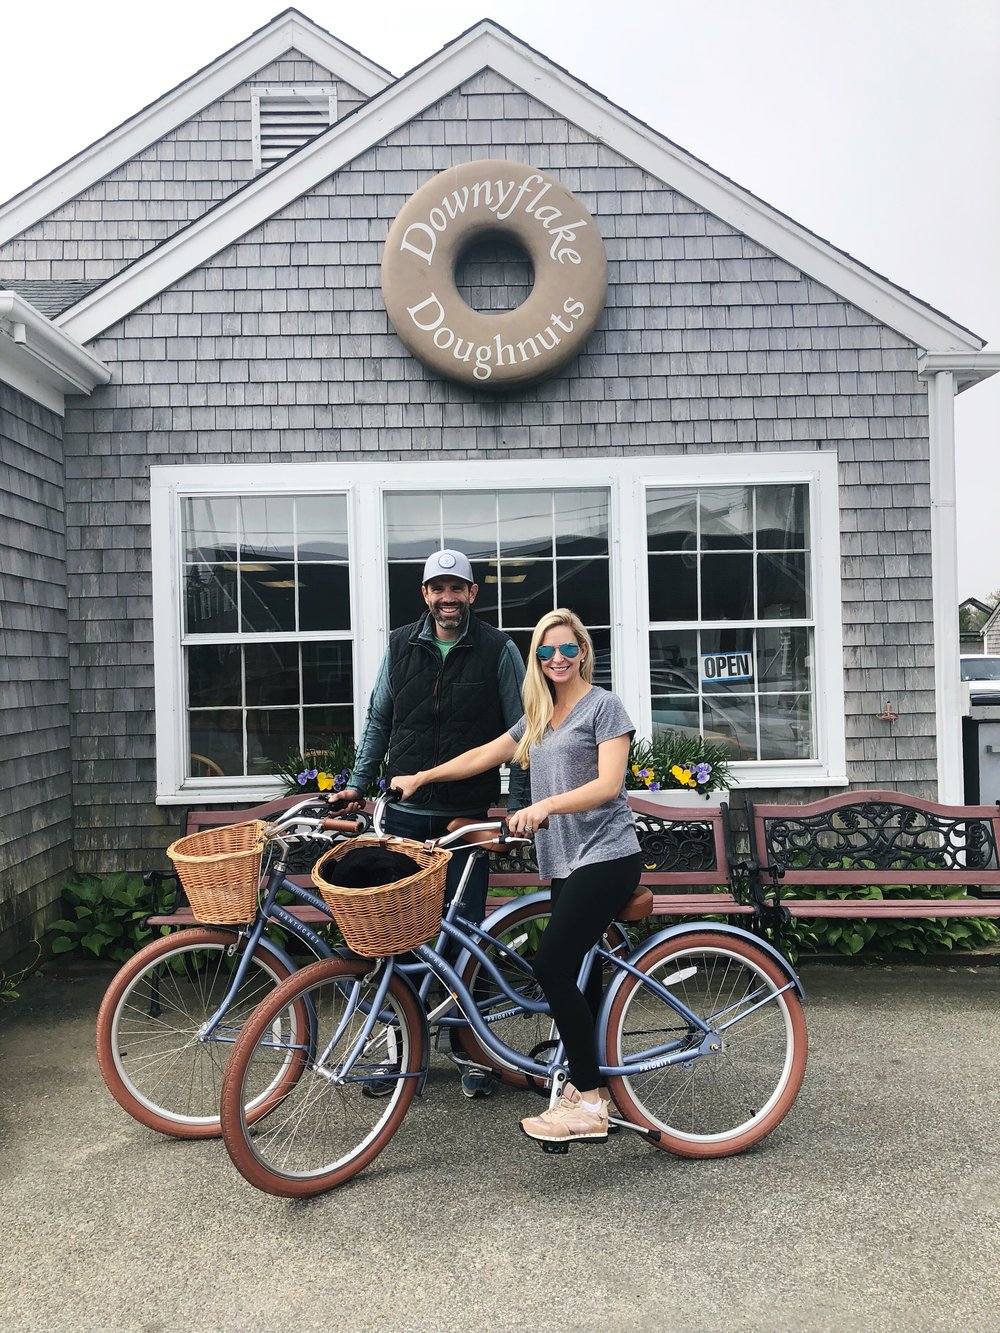 Steph and her handsome hubby vacationing in Nantucket, Massachusetts in 2018!